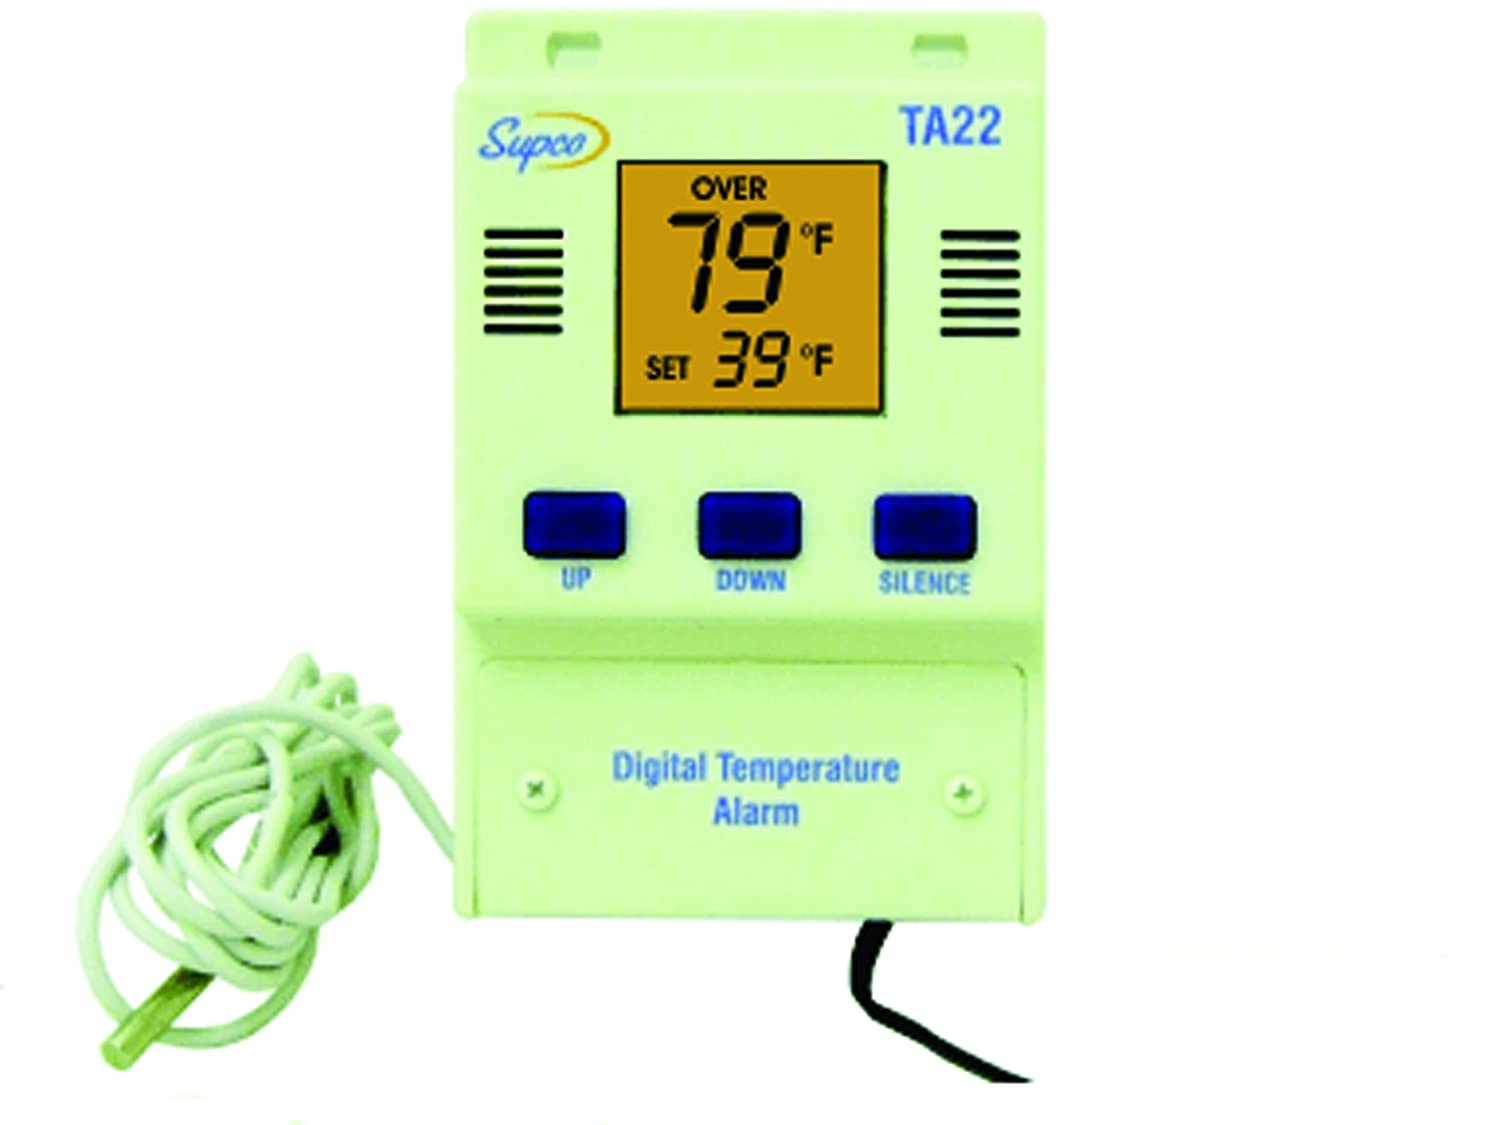 Supco TA22 Single Set Point Temperature Alarm with Digital Display, -40 to 160 Degrees F, 120 VAC 14119